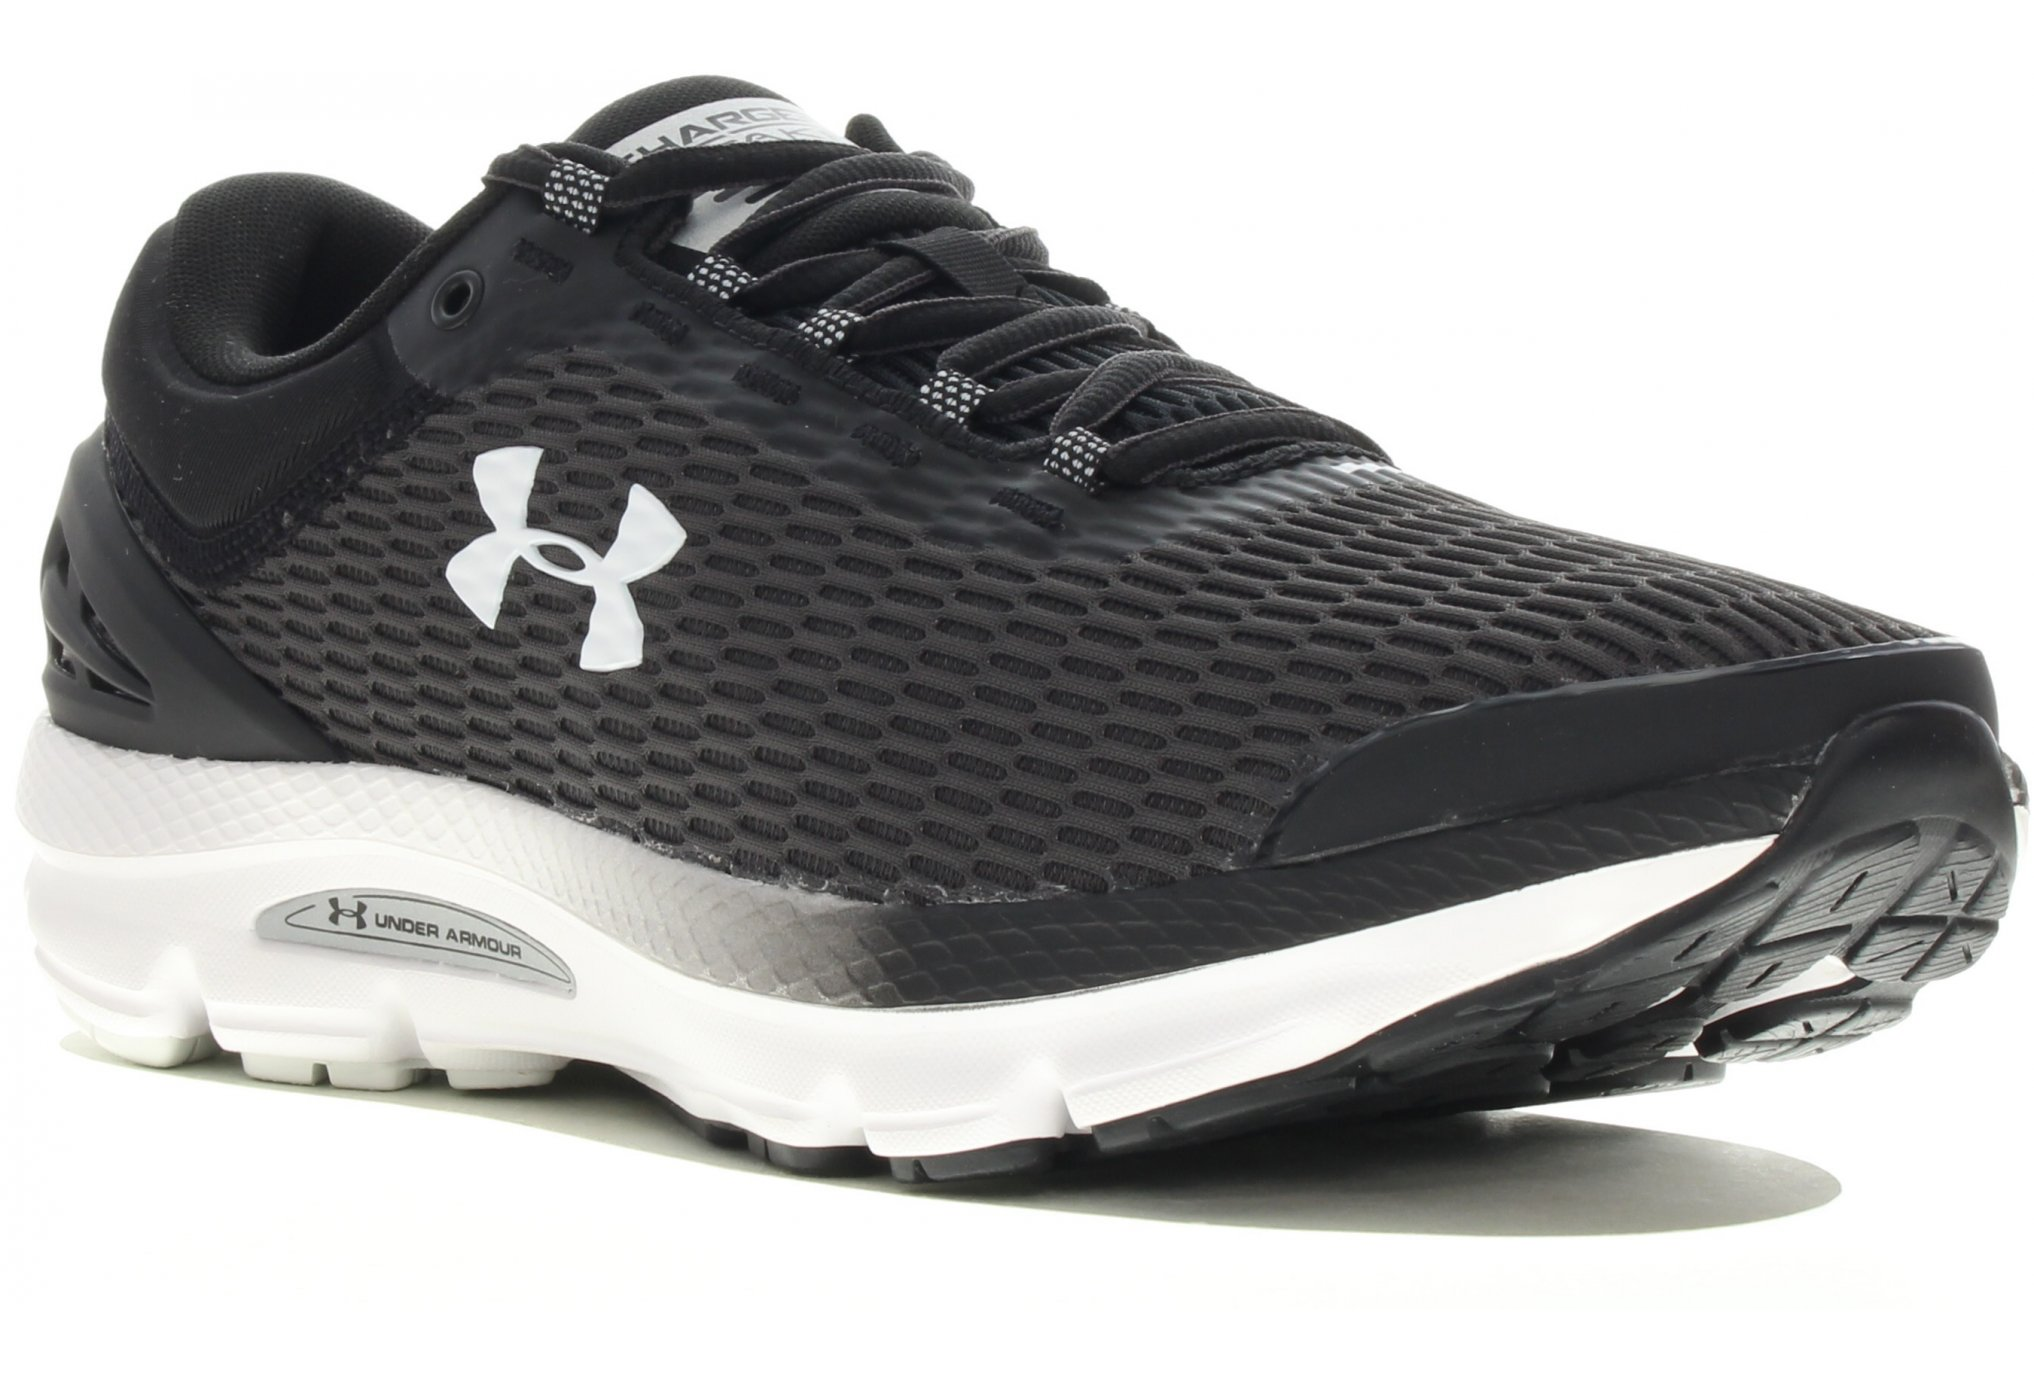 Under Armour Charged Intake 3 Chaussures homme